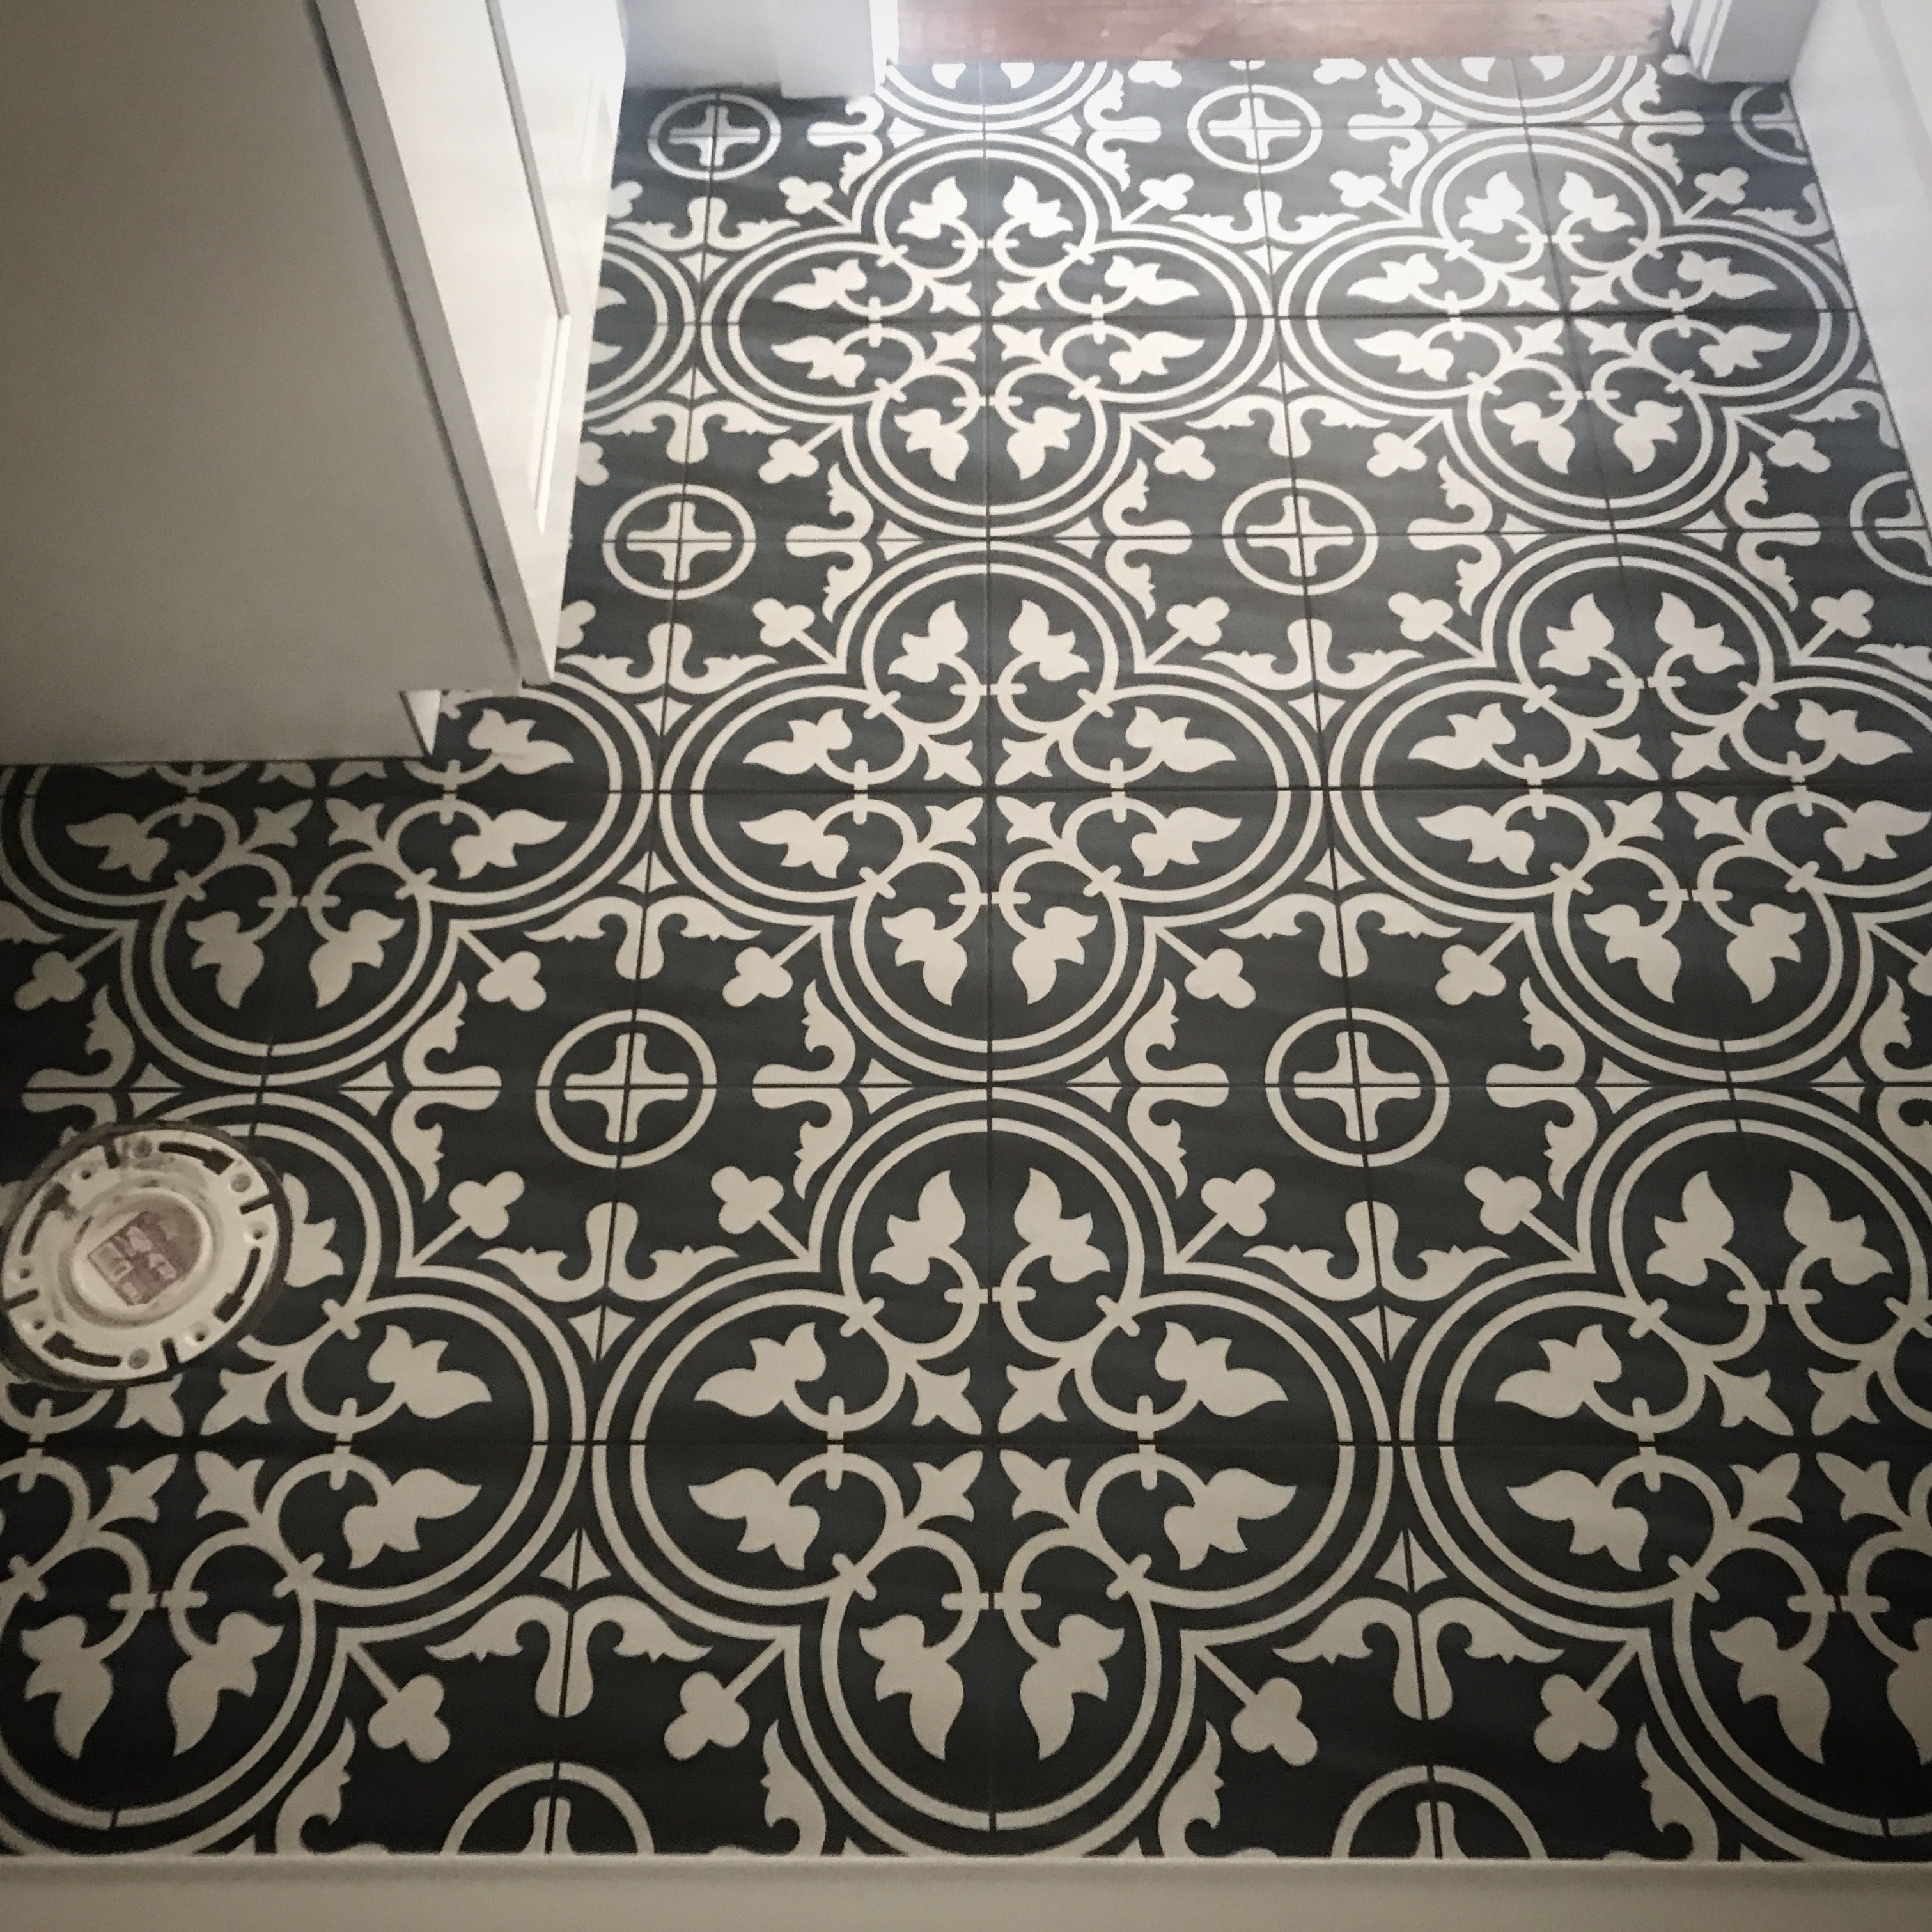 Black And White Patterned Tile With Black Grout From Joss And Main Similar Tile Found At Hom White Bathroom Tiles White Bathroom Designs Black And White Tiles